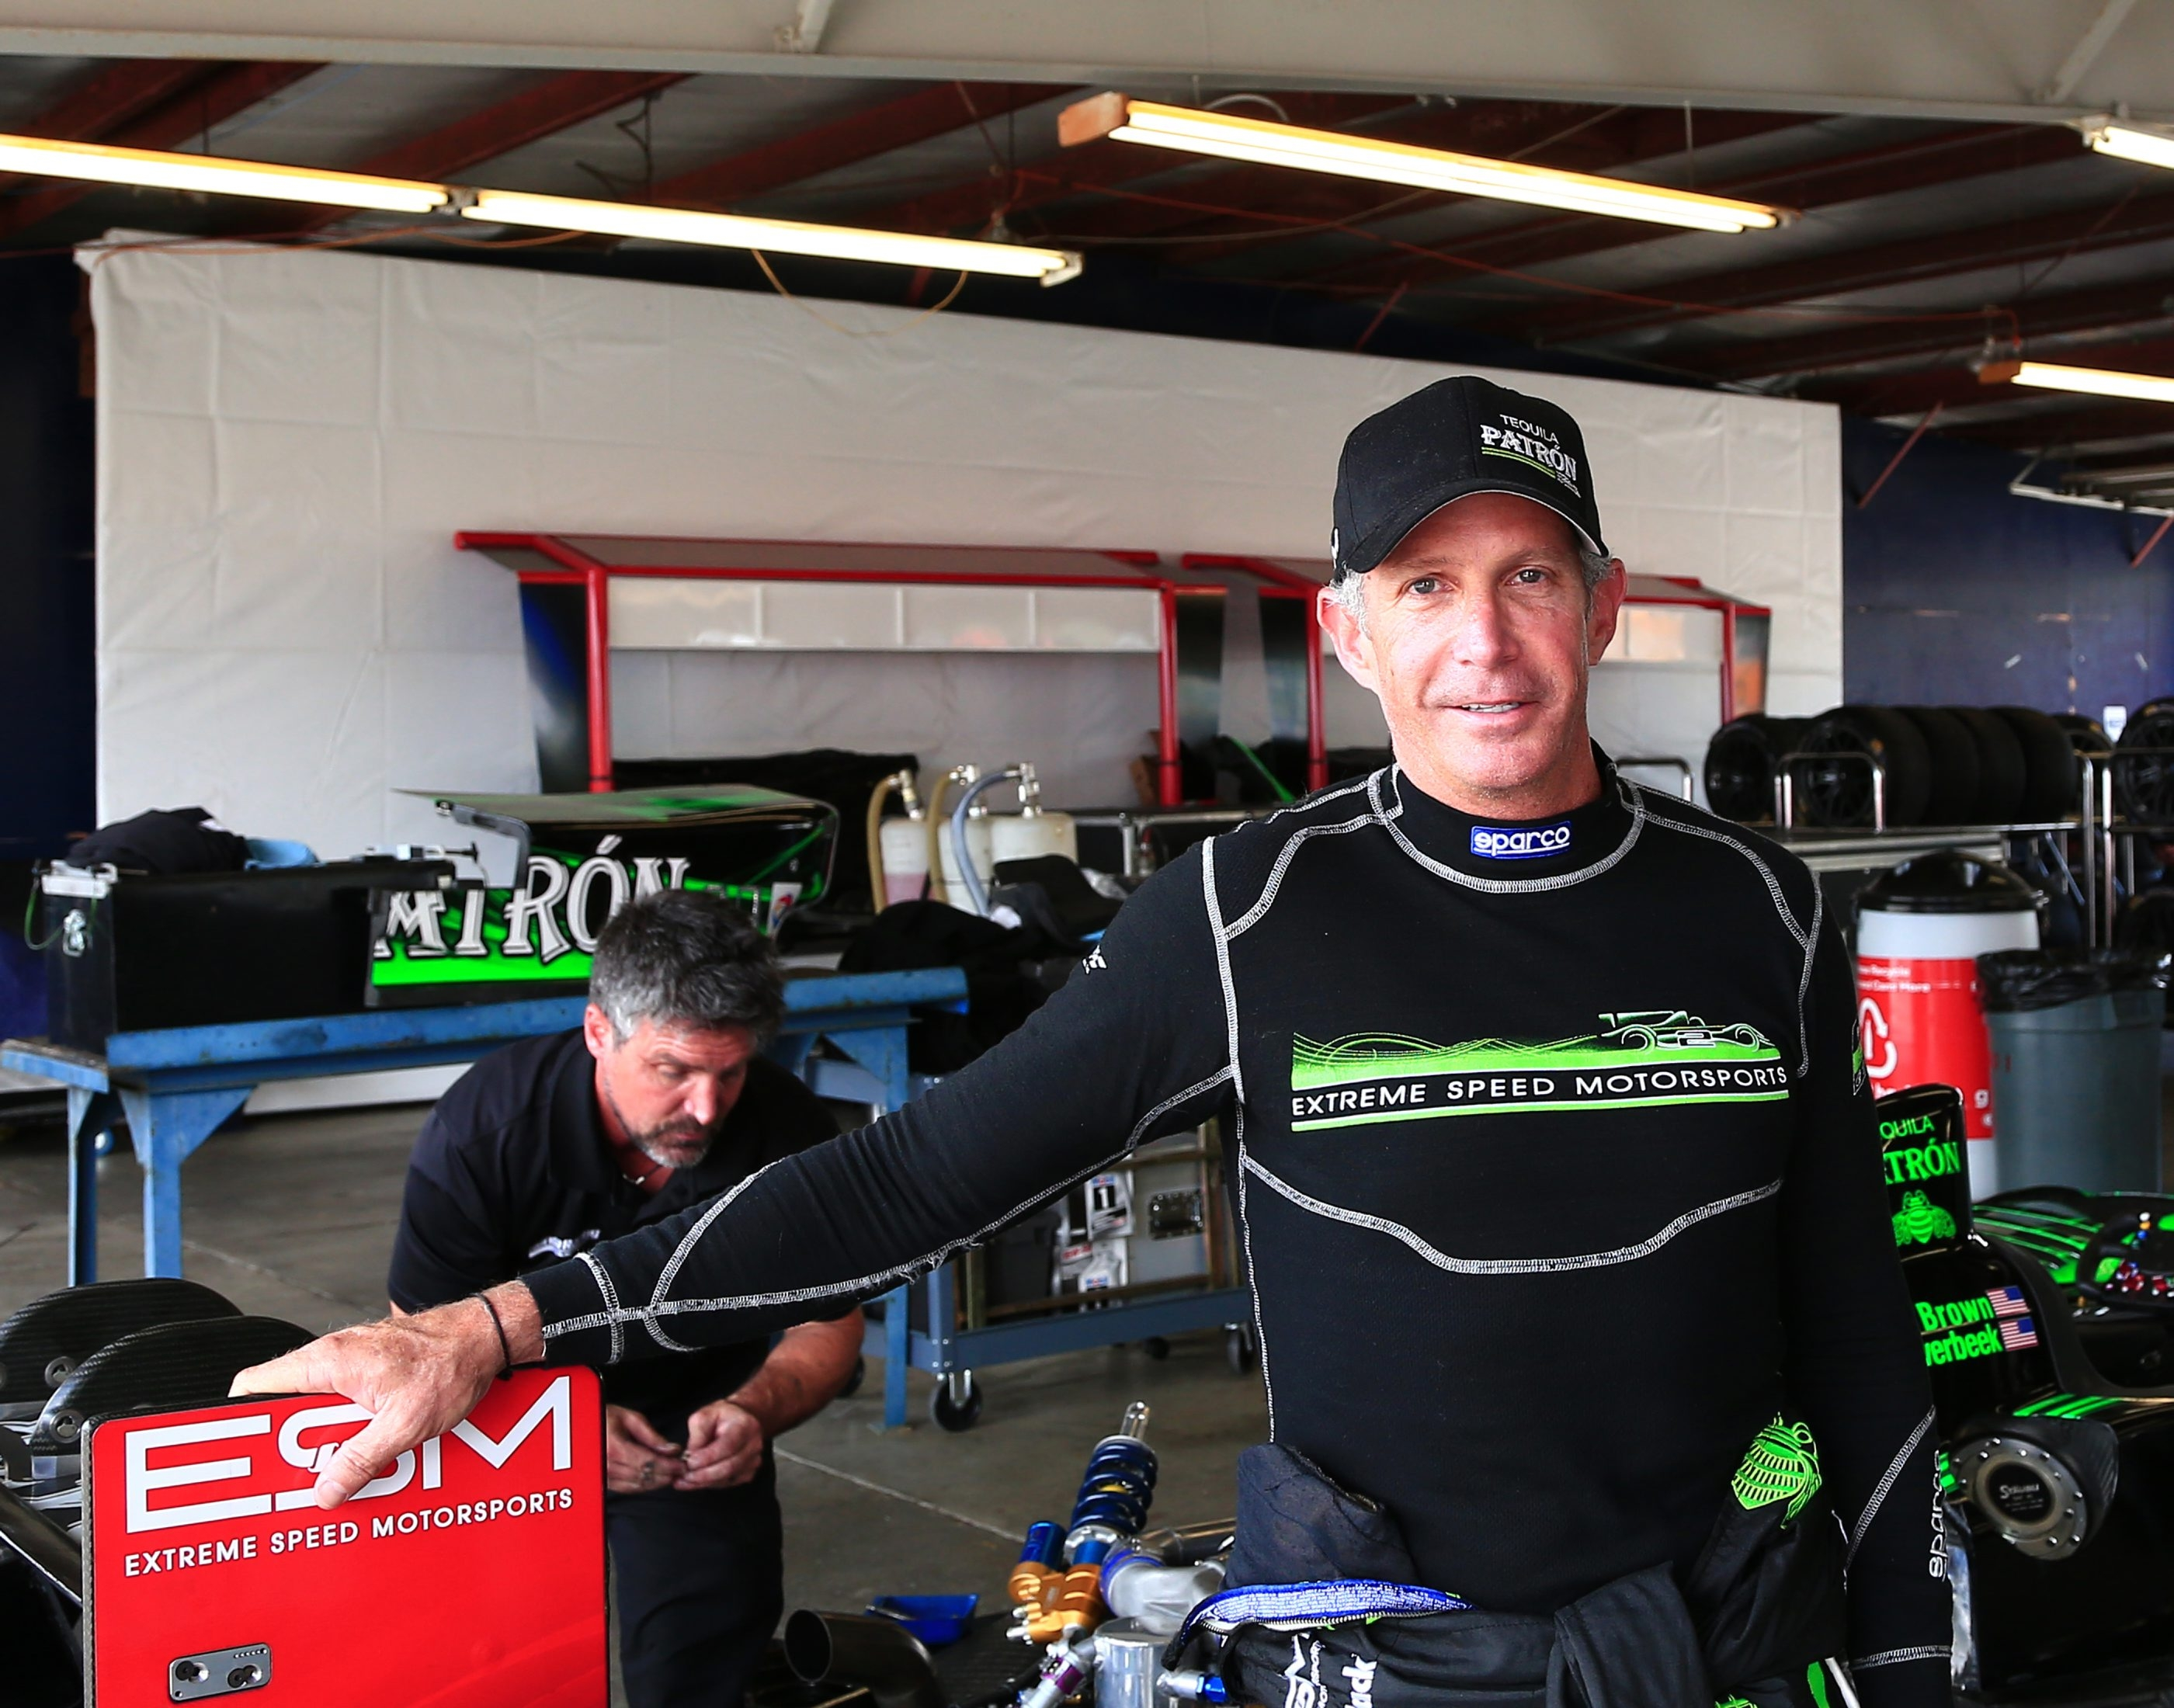 Ed Brown is part of the Extreme Speed Motorsports team.